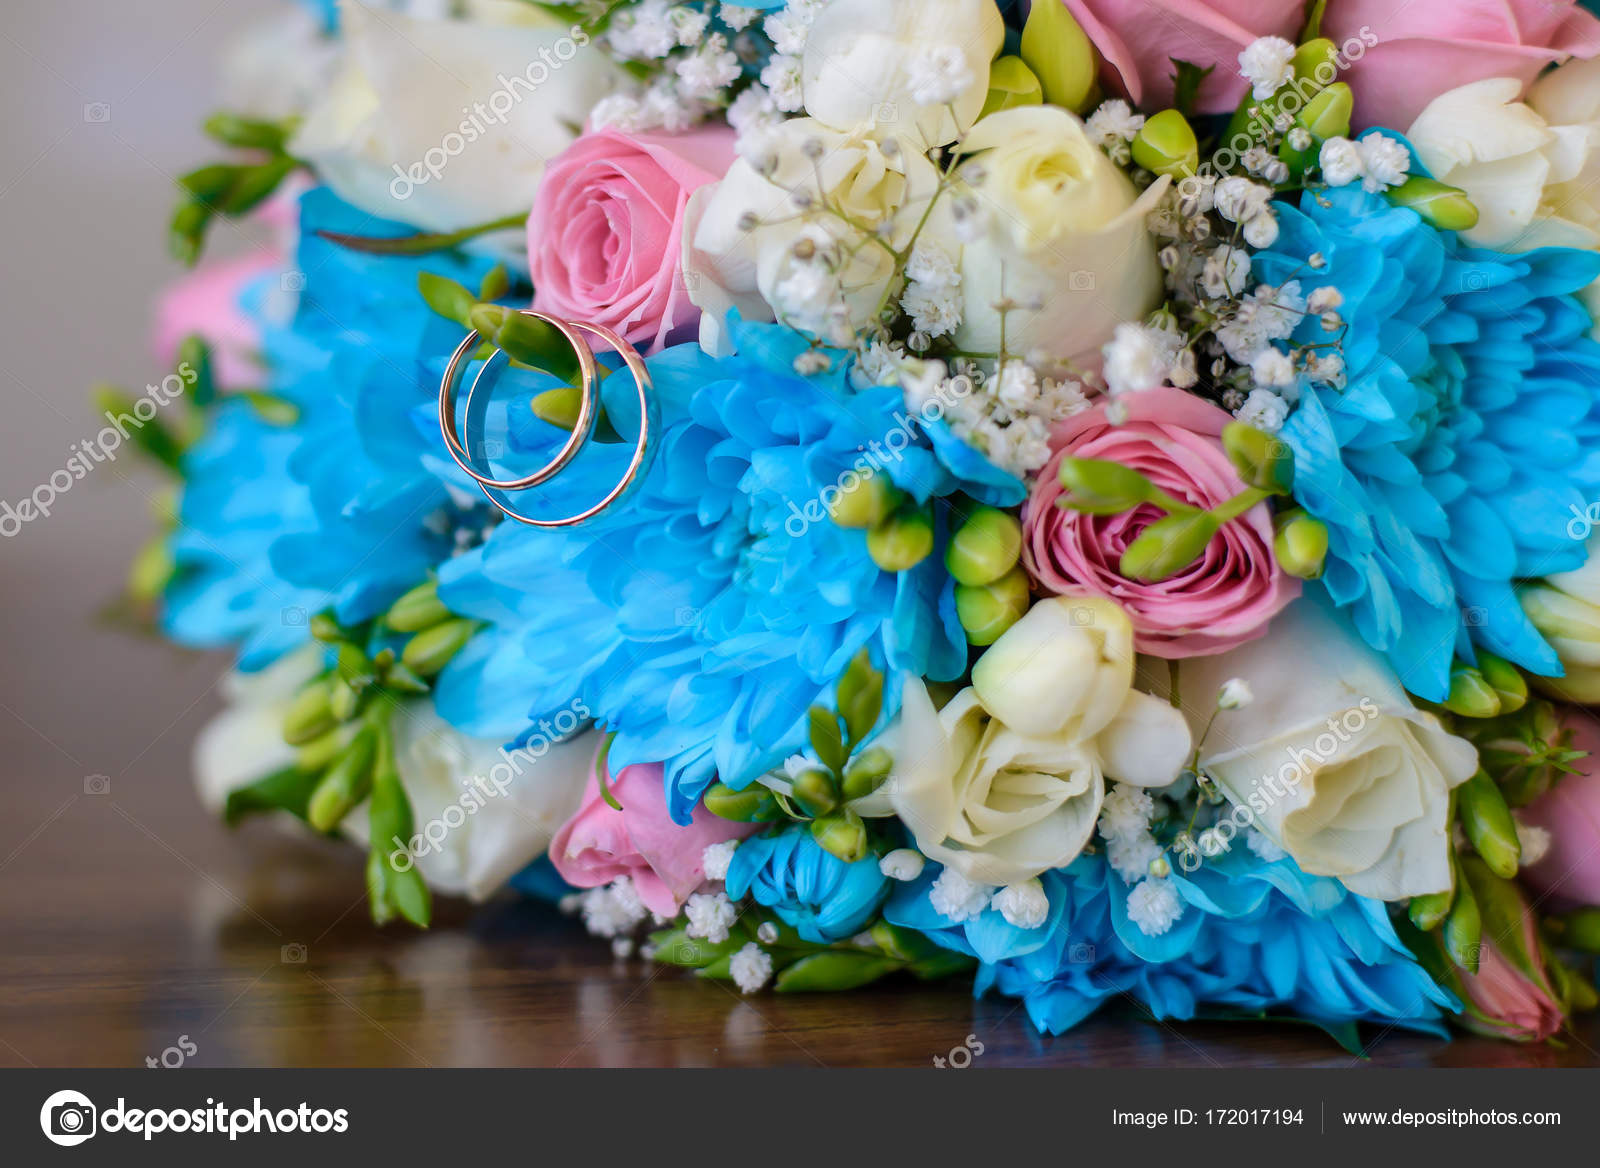 Engagement Rings And Wedding Bouquet On A Wooden Table Stock Photo